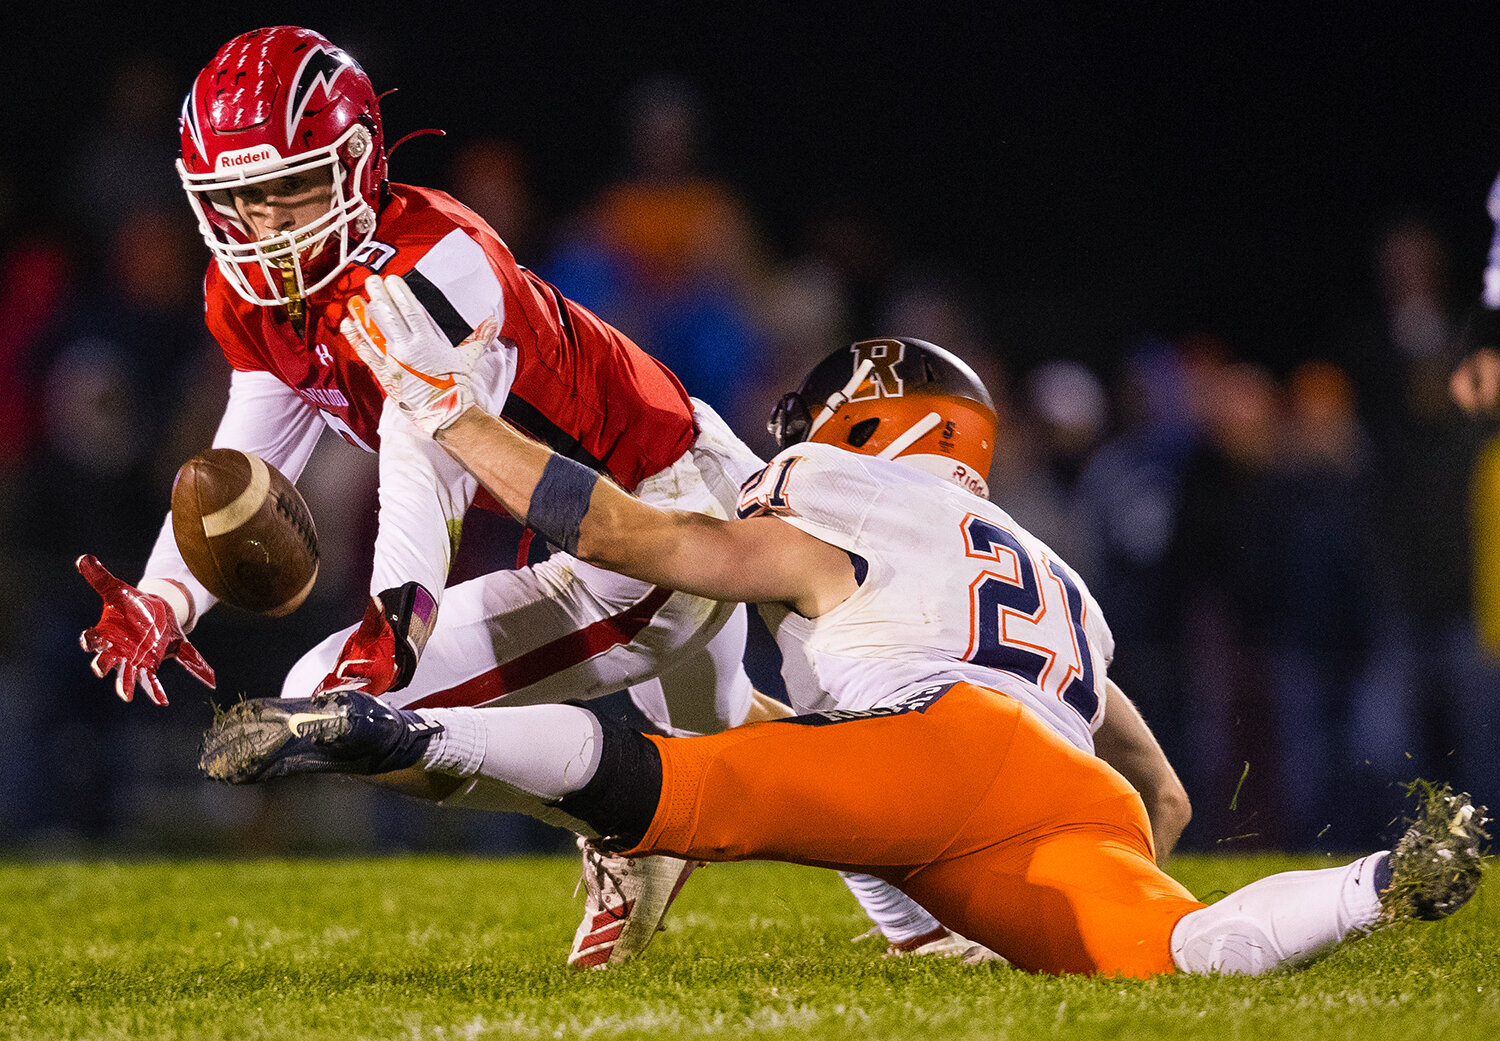 Glenwood's Ian Benner (9)  lunges for a pass intended for Rochester's David Yoggerst (21) at Glenwood High School Friday, Oct. 25, 2019. [Ted Schurter/The State Journal-Register]